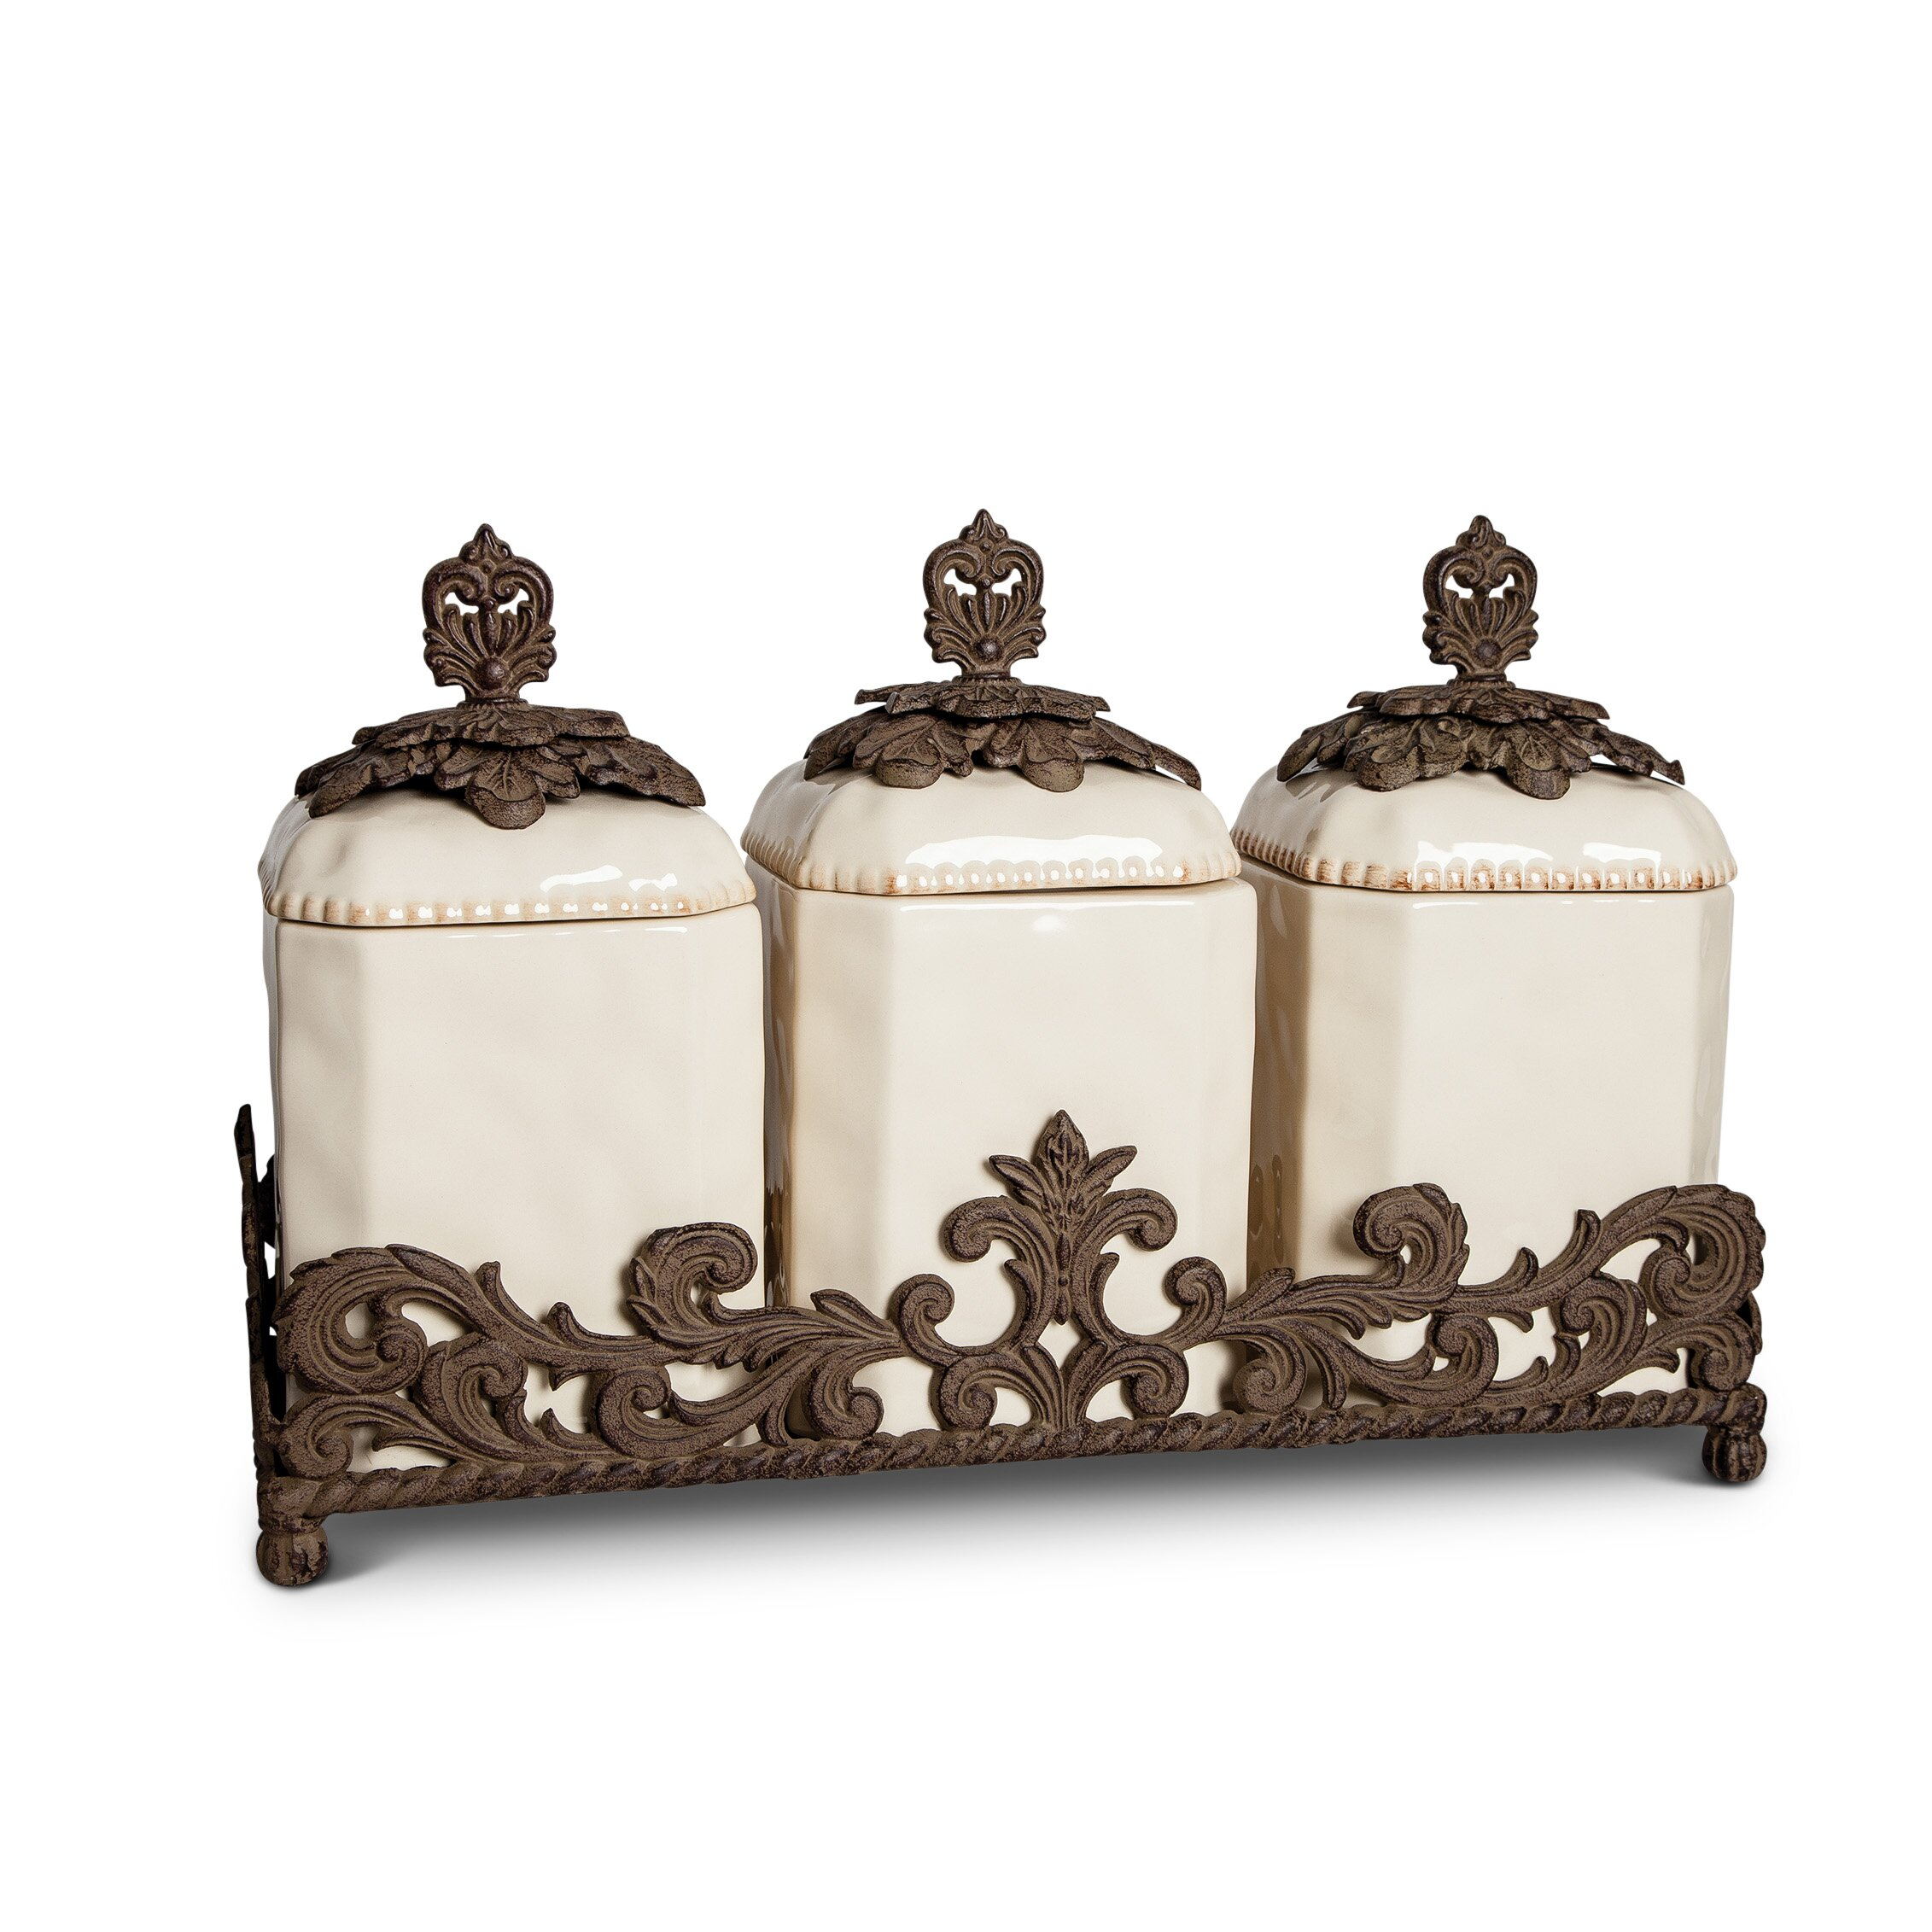 tggc 3 piece kitchen canister set wayfair ca shop metal kitchen canisters on wanelo